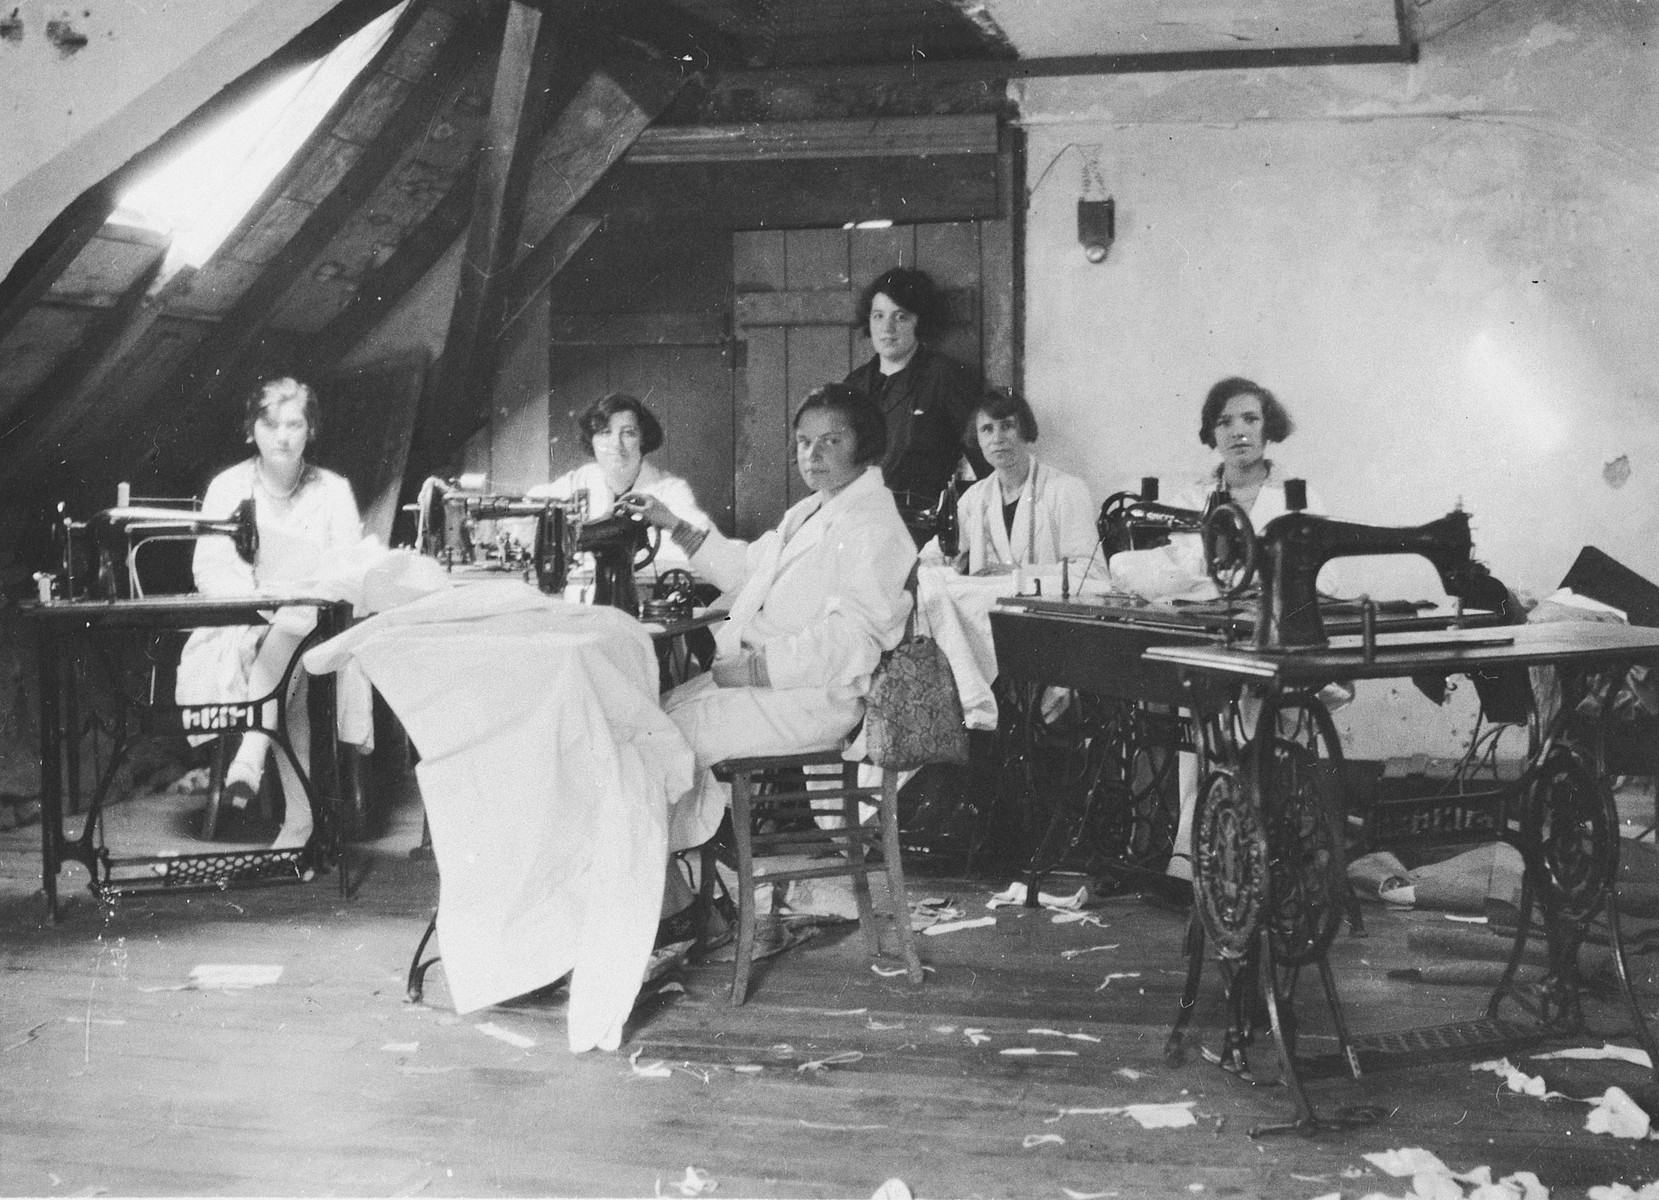 A group of young female employees pose at their sewing tables in the Palais d'Habillement clothing company in Luxembourg.  Among those pictured are Marquerite Nussbaum (standing at the back) and her sister Madeline (probably seated, second from the left).